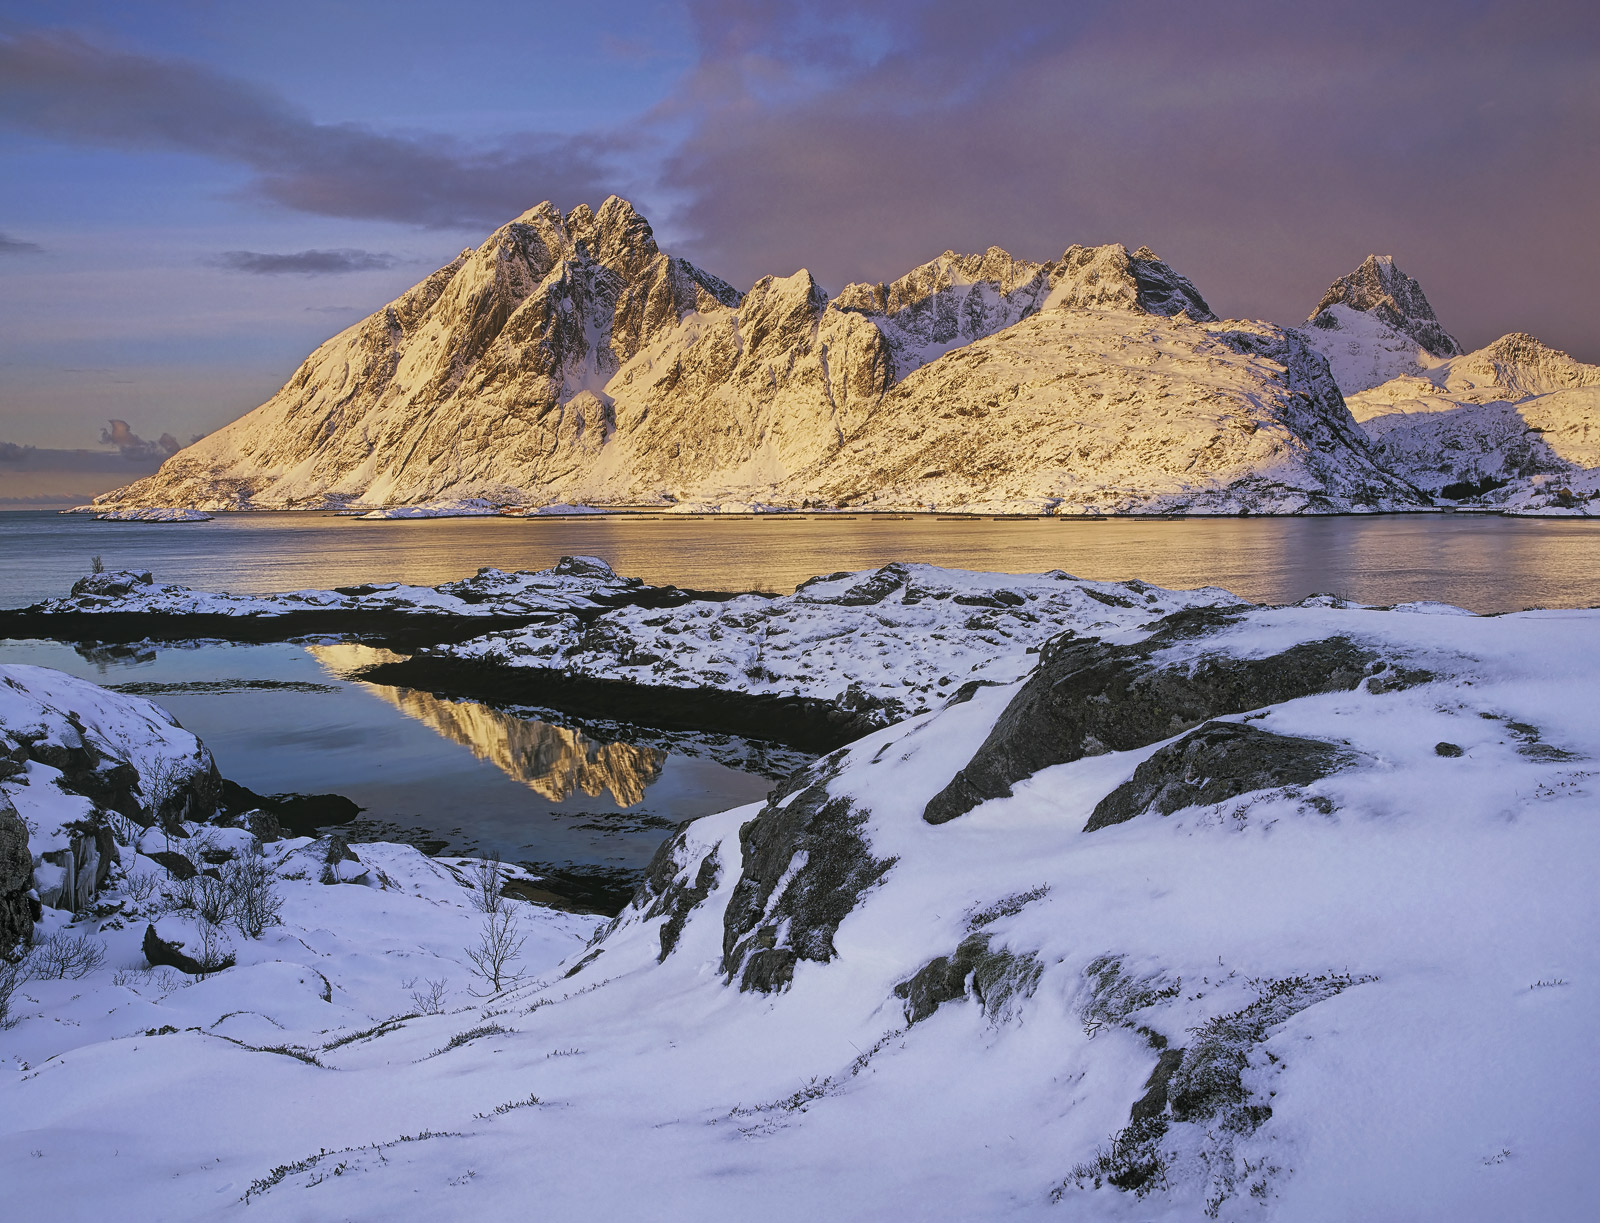 Golden Morning Sund, Sund, Lofoten, Norway, light, spilled, winter, clouds, snow, peak, illuminated, reflected, turquois, photo